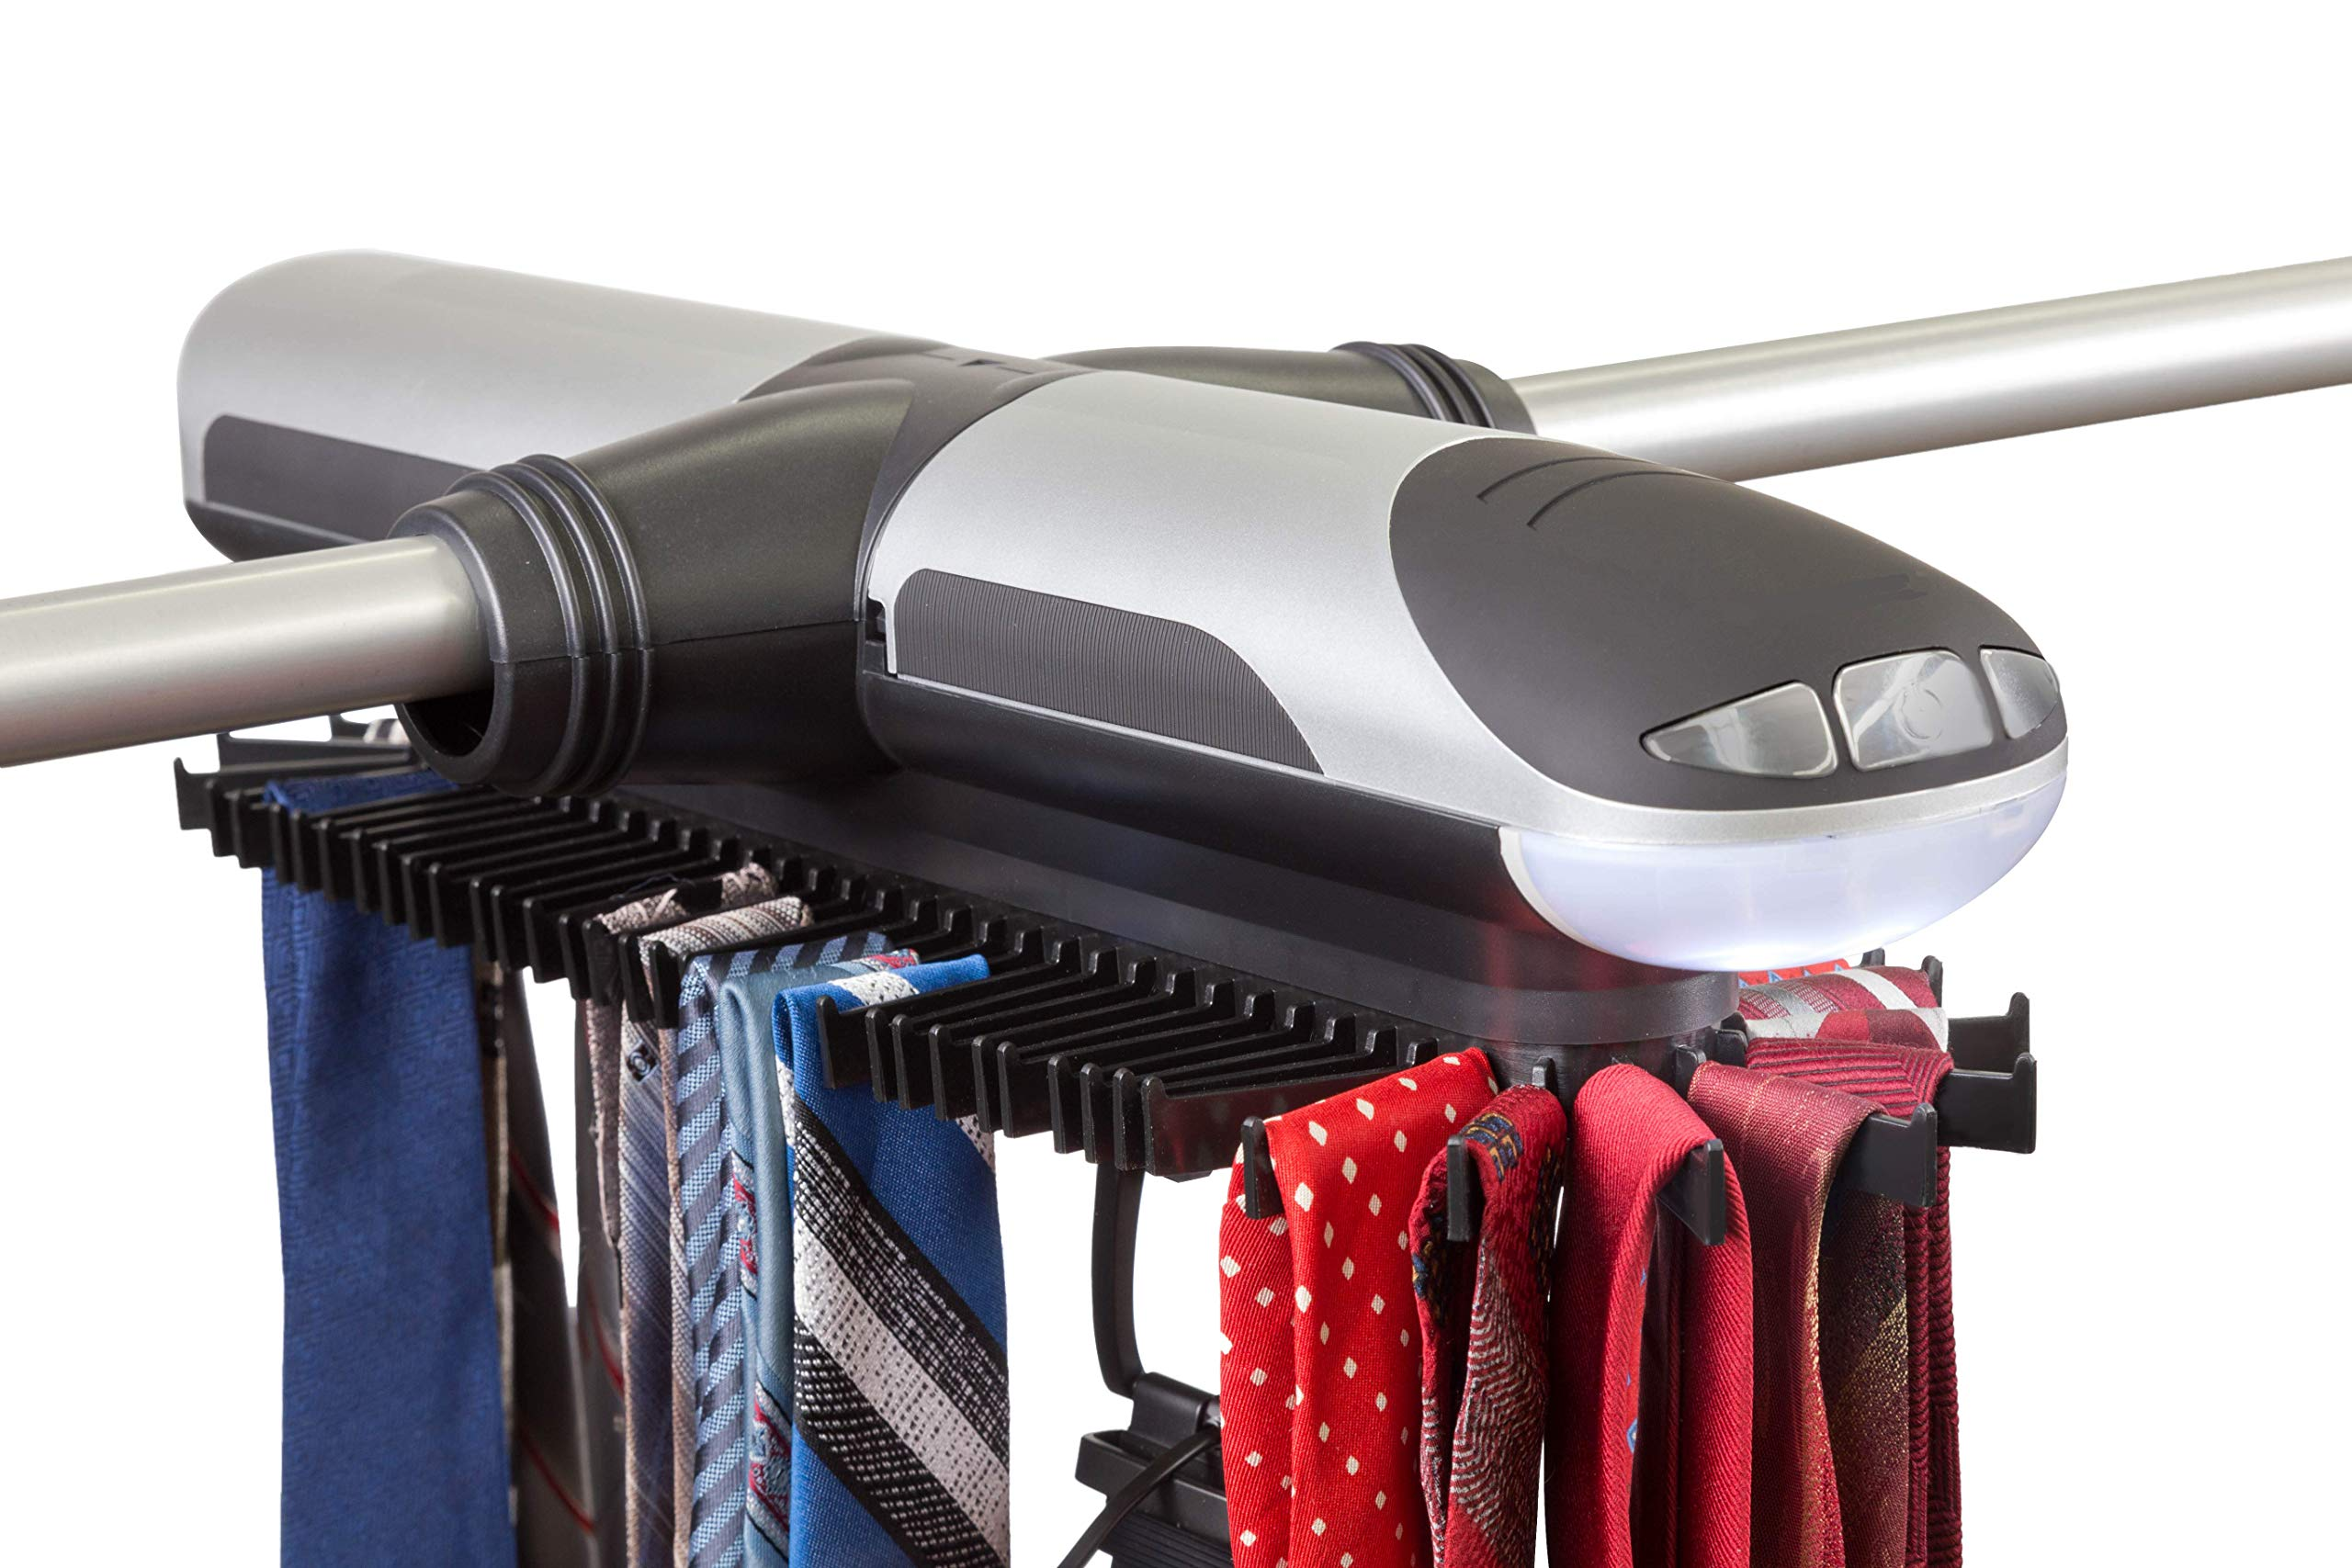 Etienne Alair Motorized Tie Rack and Belt Organizer for Closet with Cool LED Lights - Battery Operated - Free Travel Tie Pouch and Clip Included - Includes J Hooks for Wire Shelving by Etienne Alair